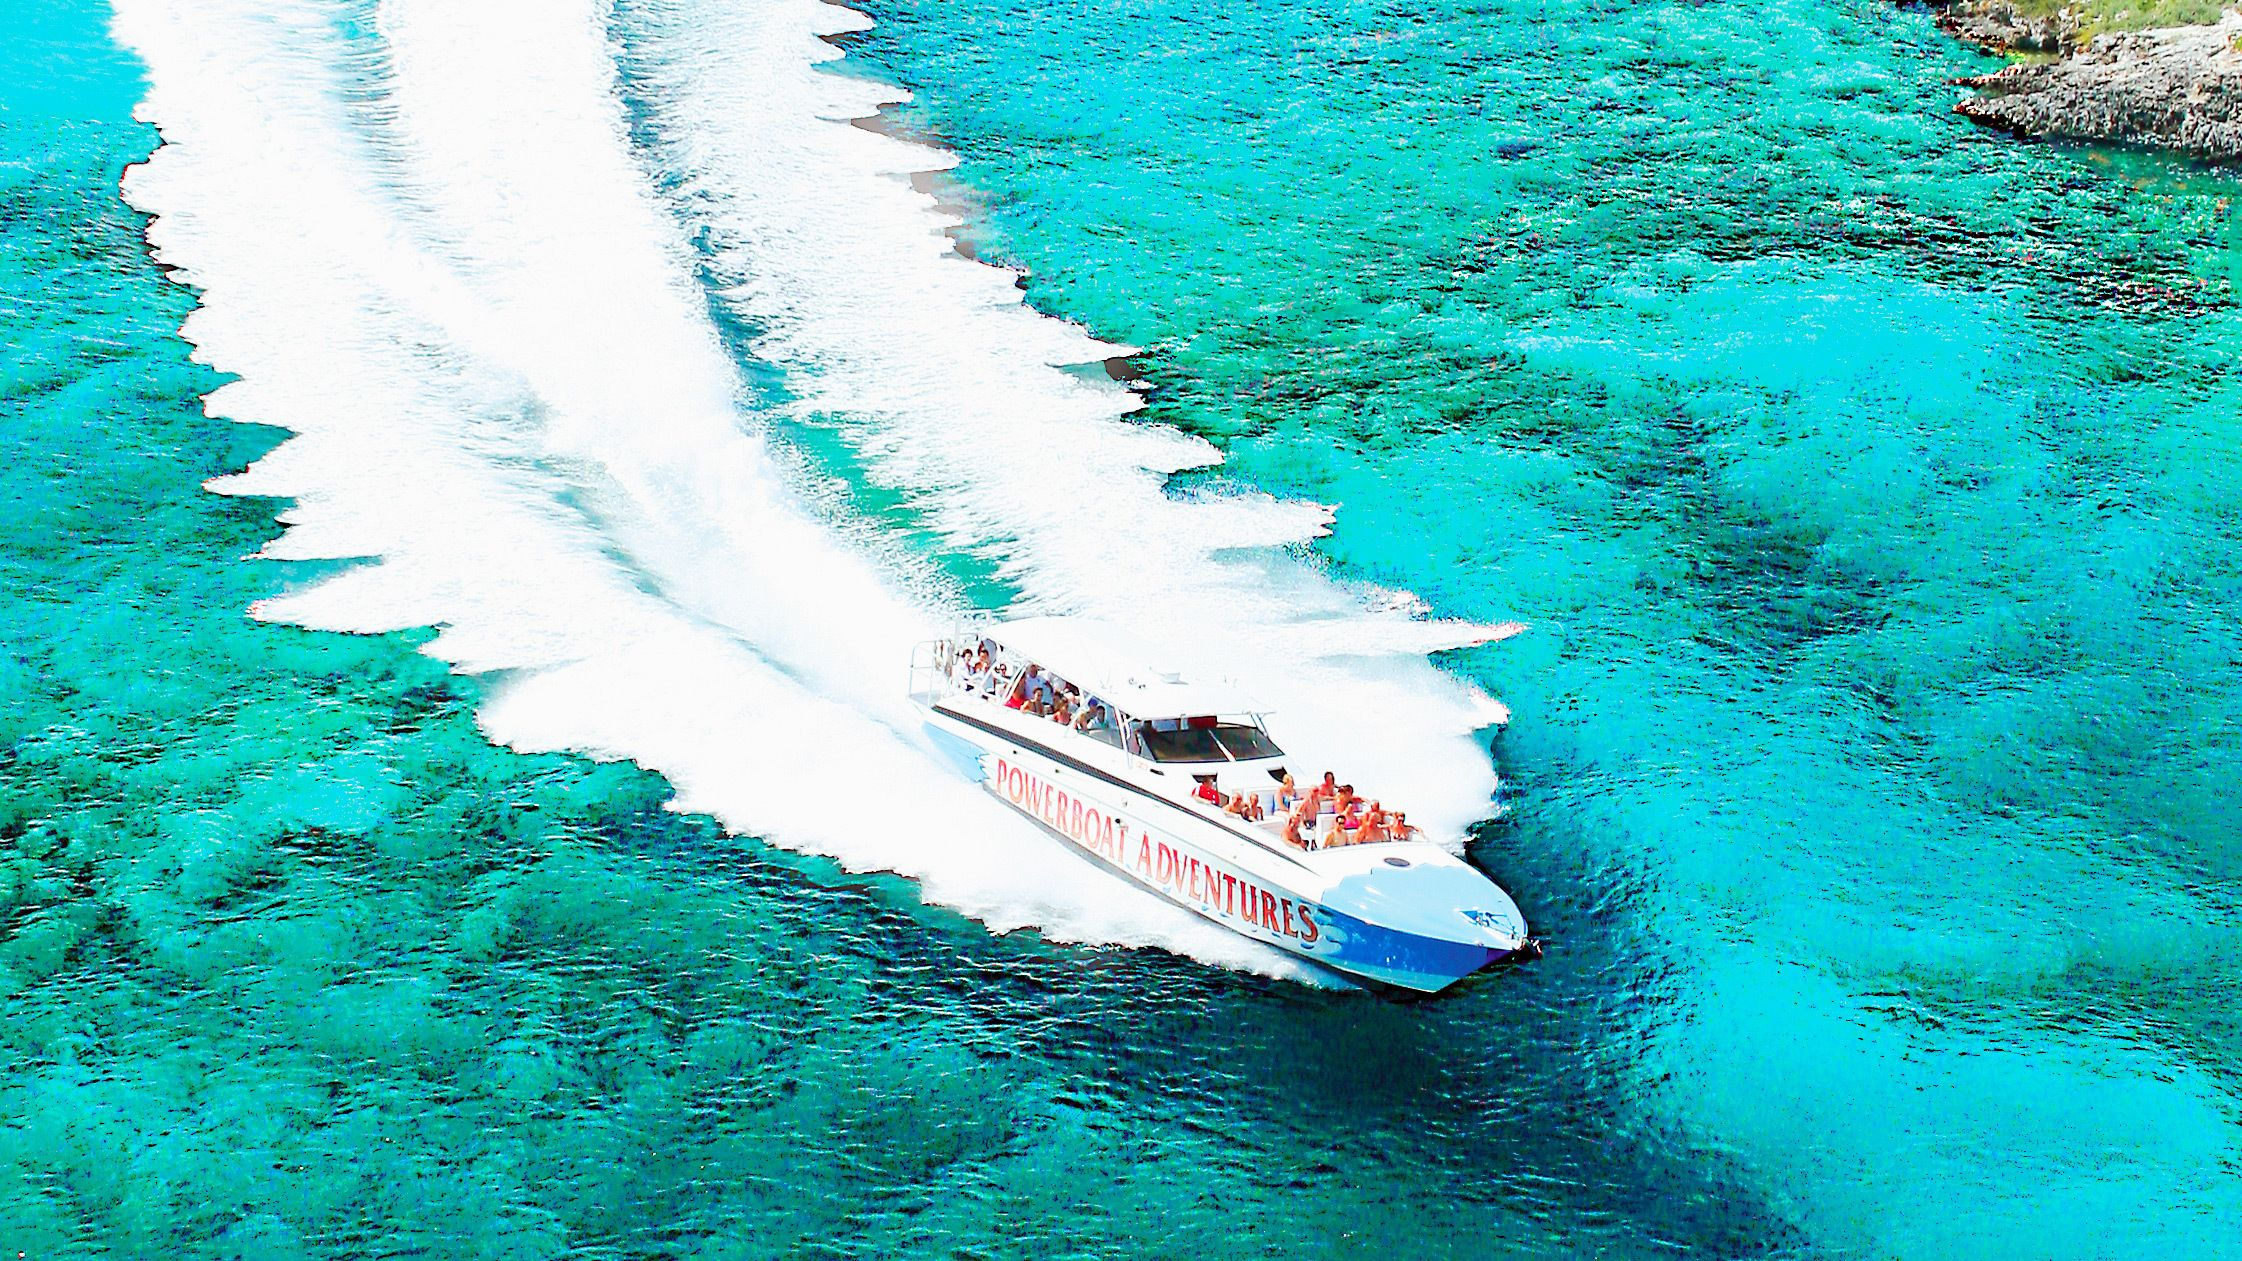 Powerboat on the move in Bahamas